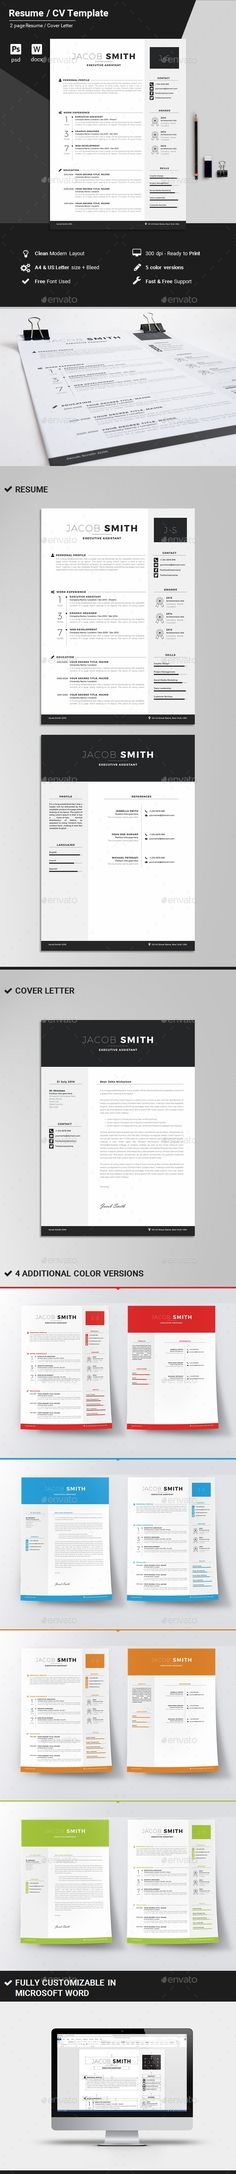 Resume   Cover Letter Resume cover letters, Cover letter resume - cover letter and resume templates for microsoft word